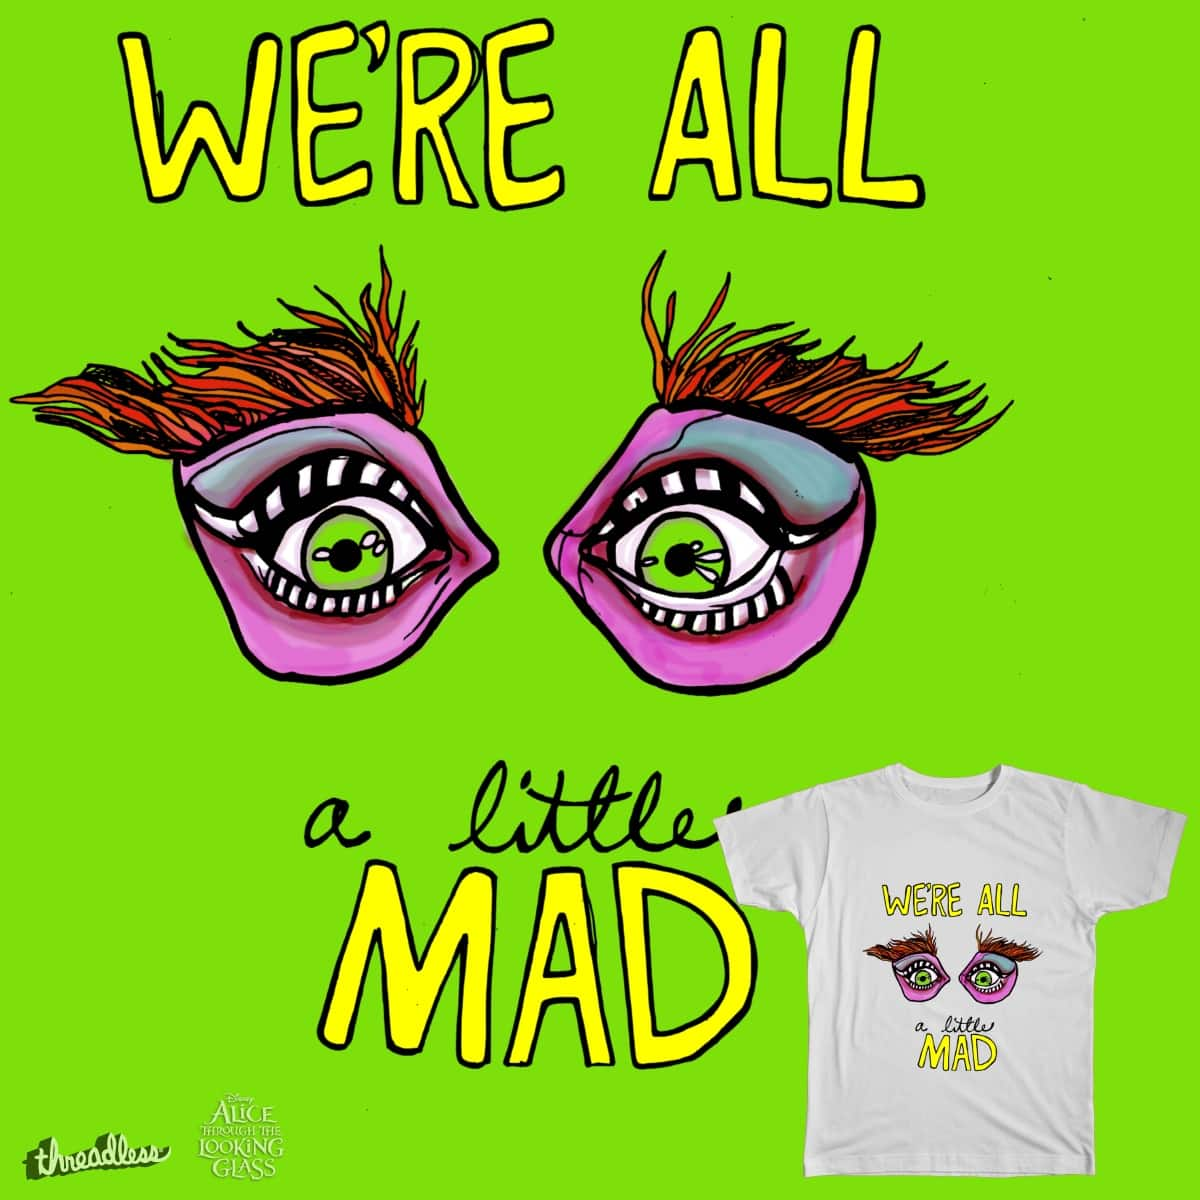 We're All a Little Mad....'Said The Hatter by inkeater on Threadless